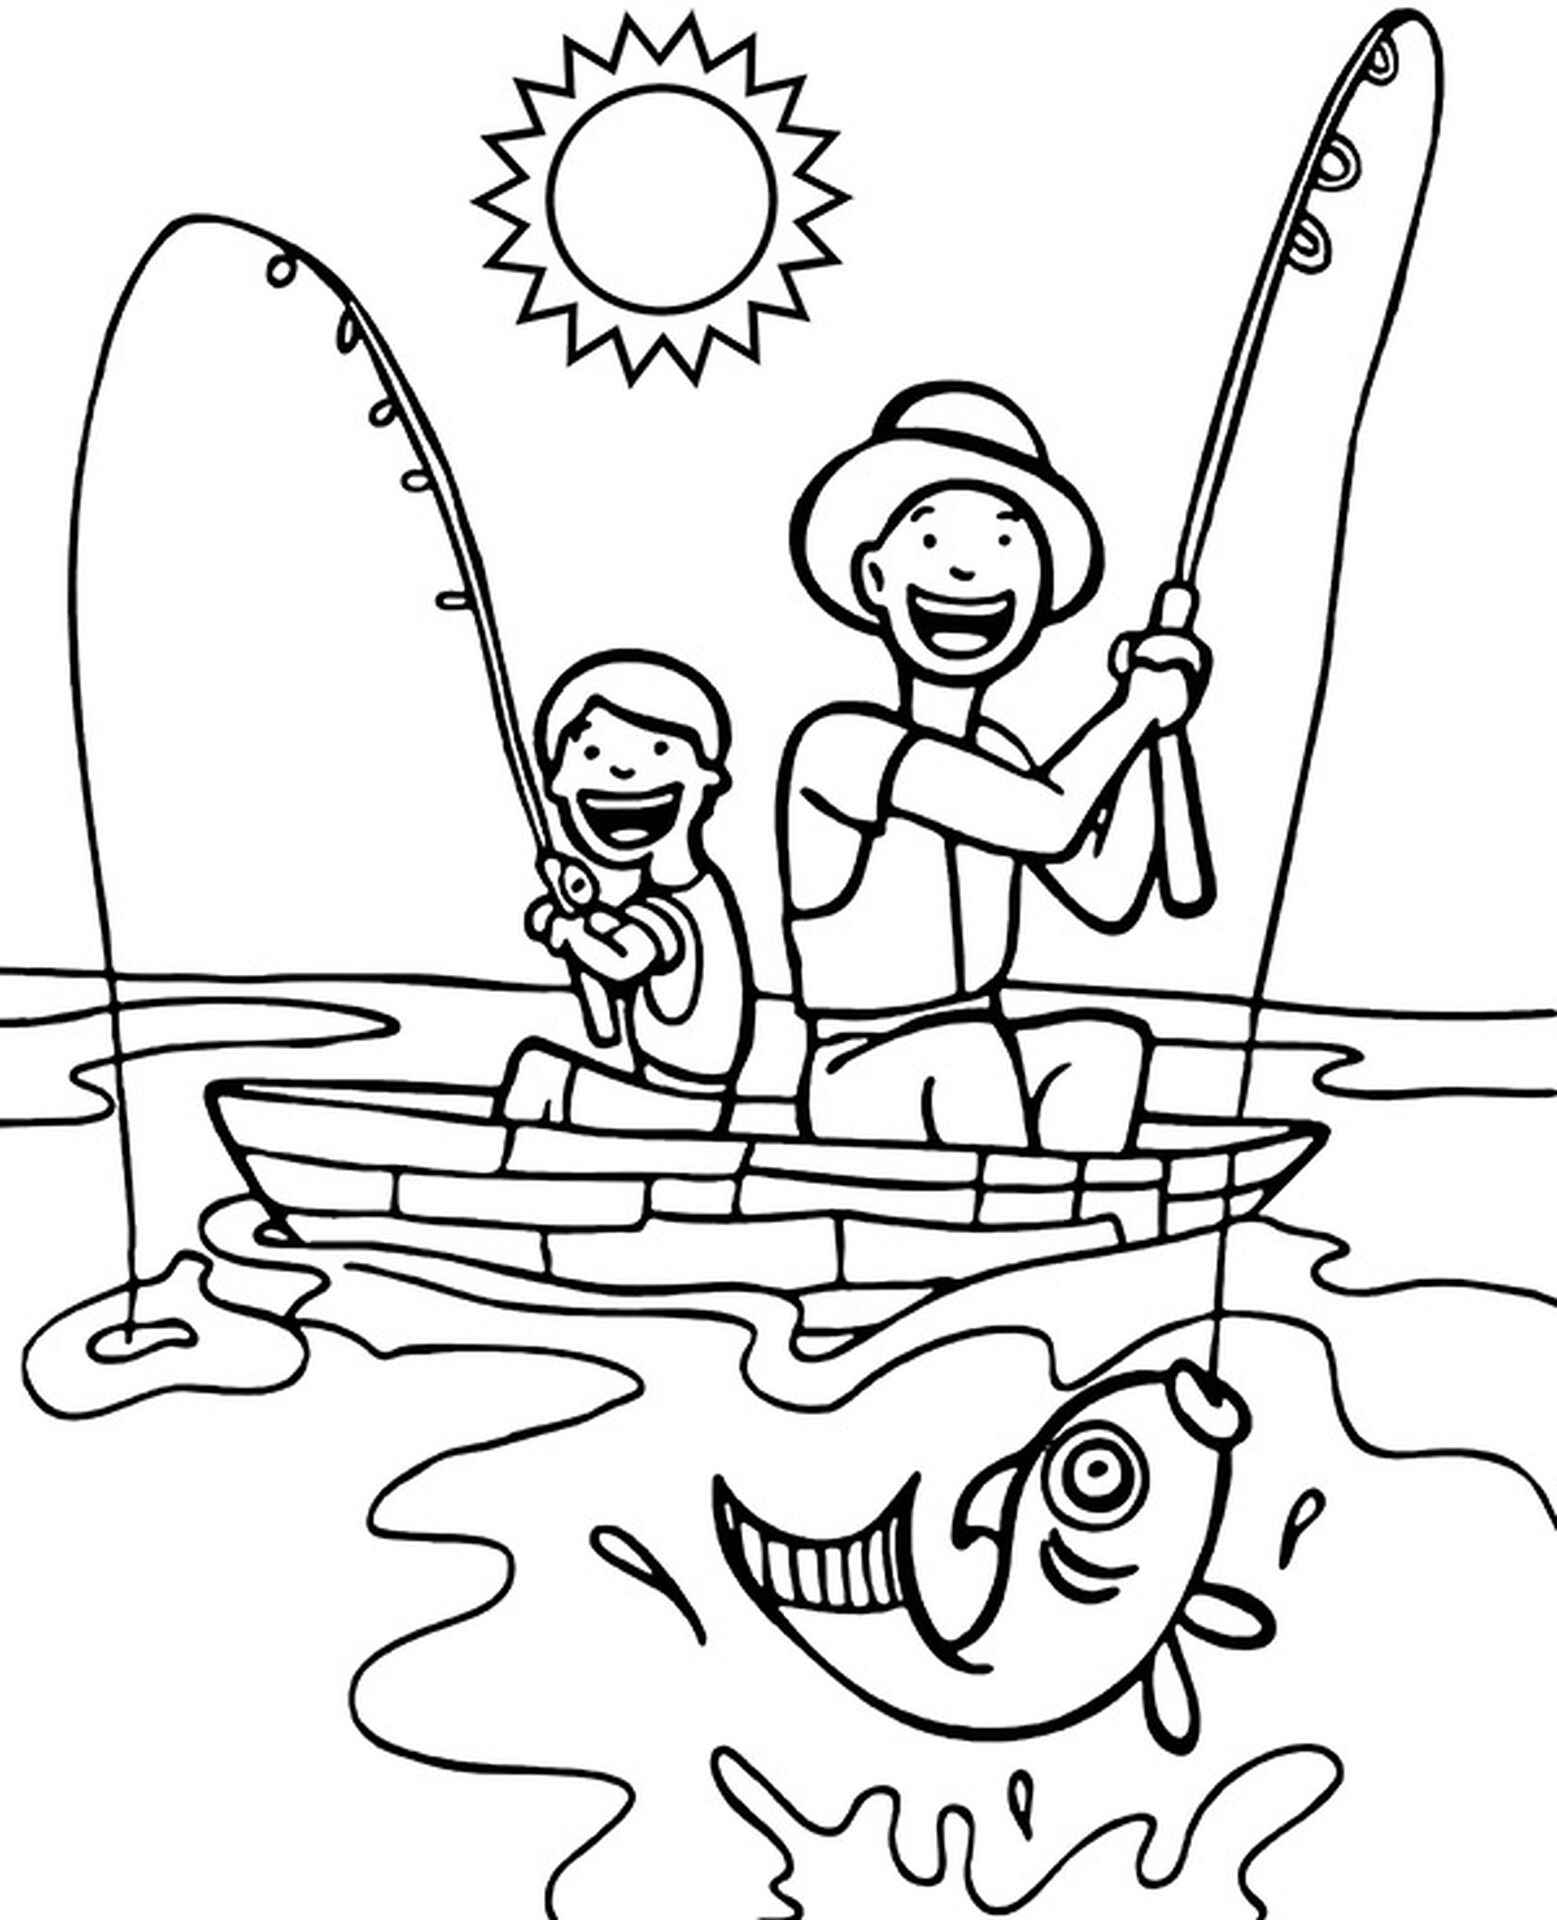 Fishing From Boat Coloring Page